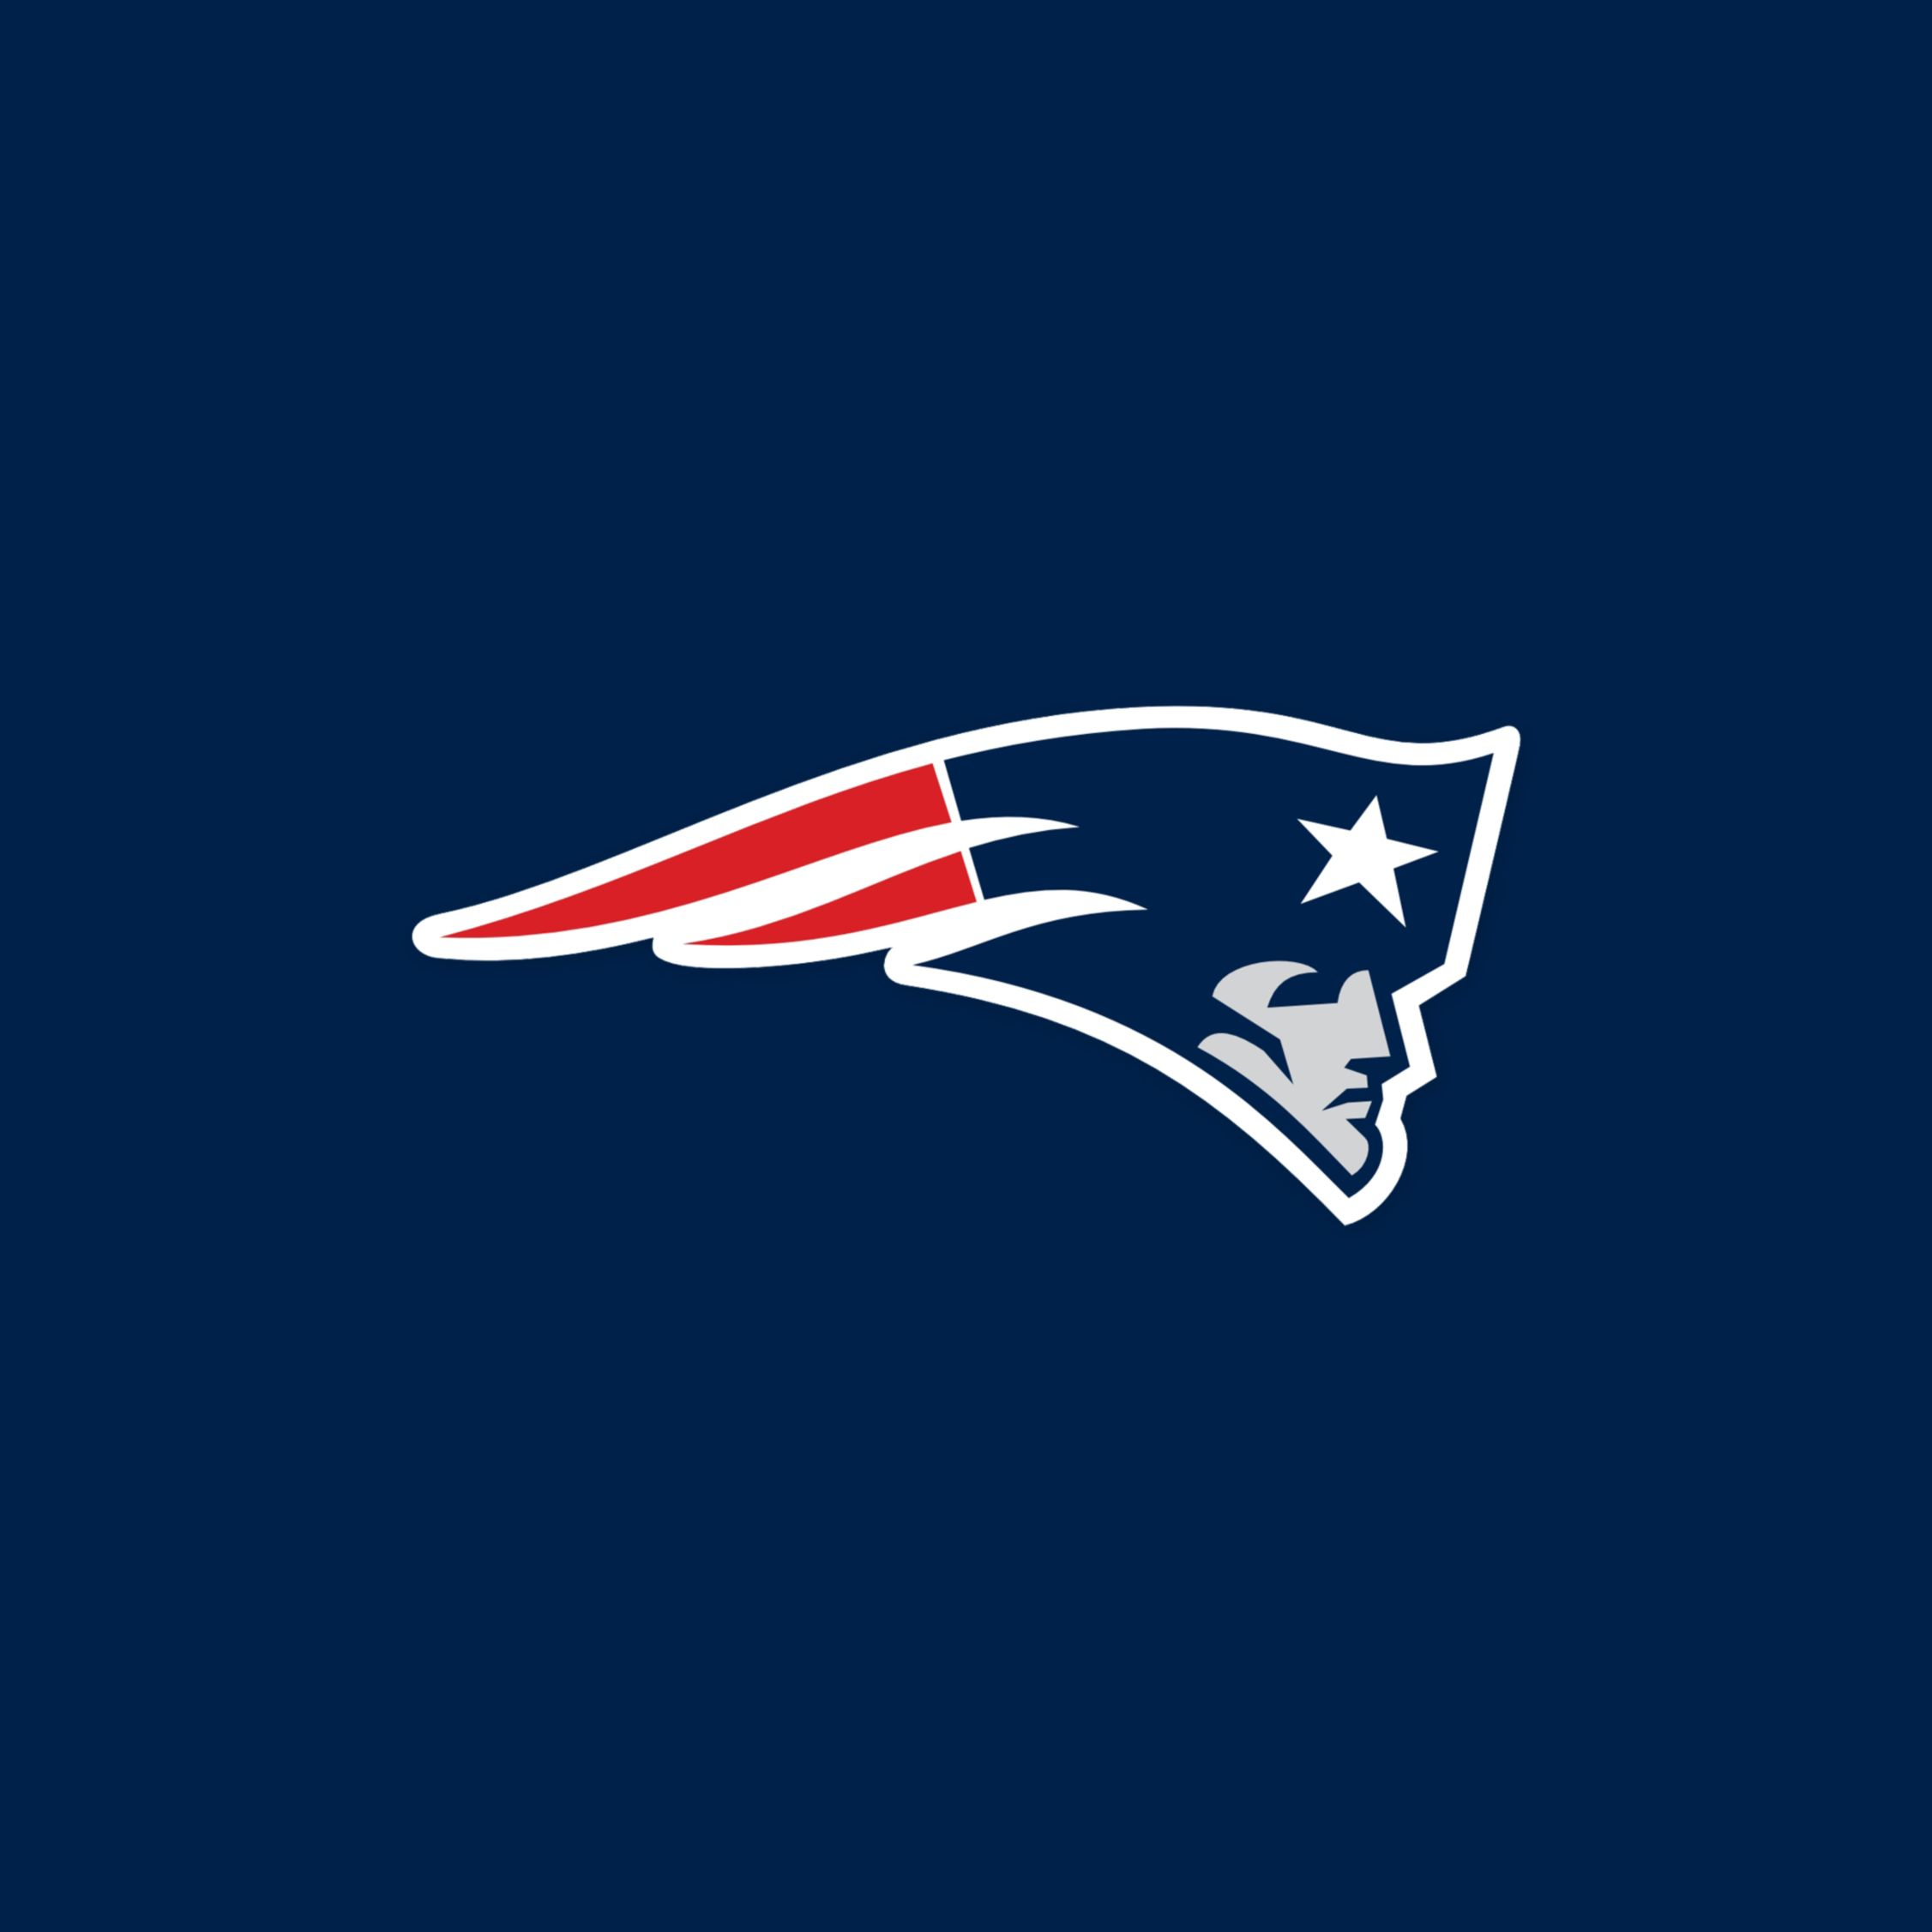 Download free HD Patriots Android 2048×2048 Wallpaper, image